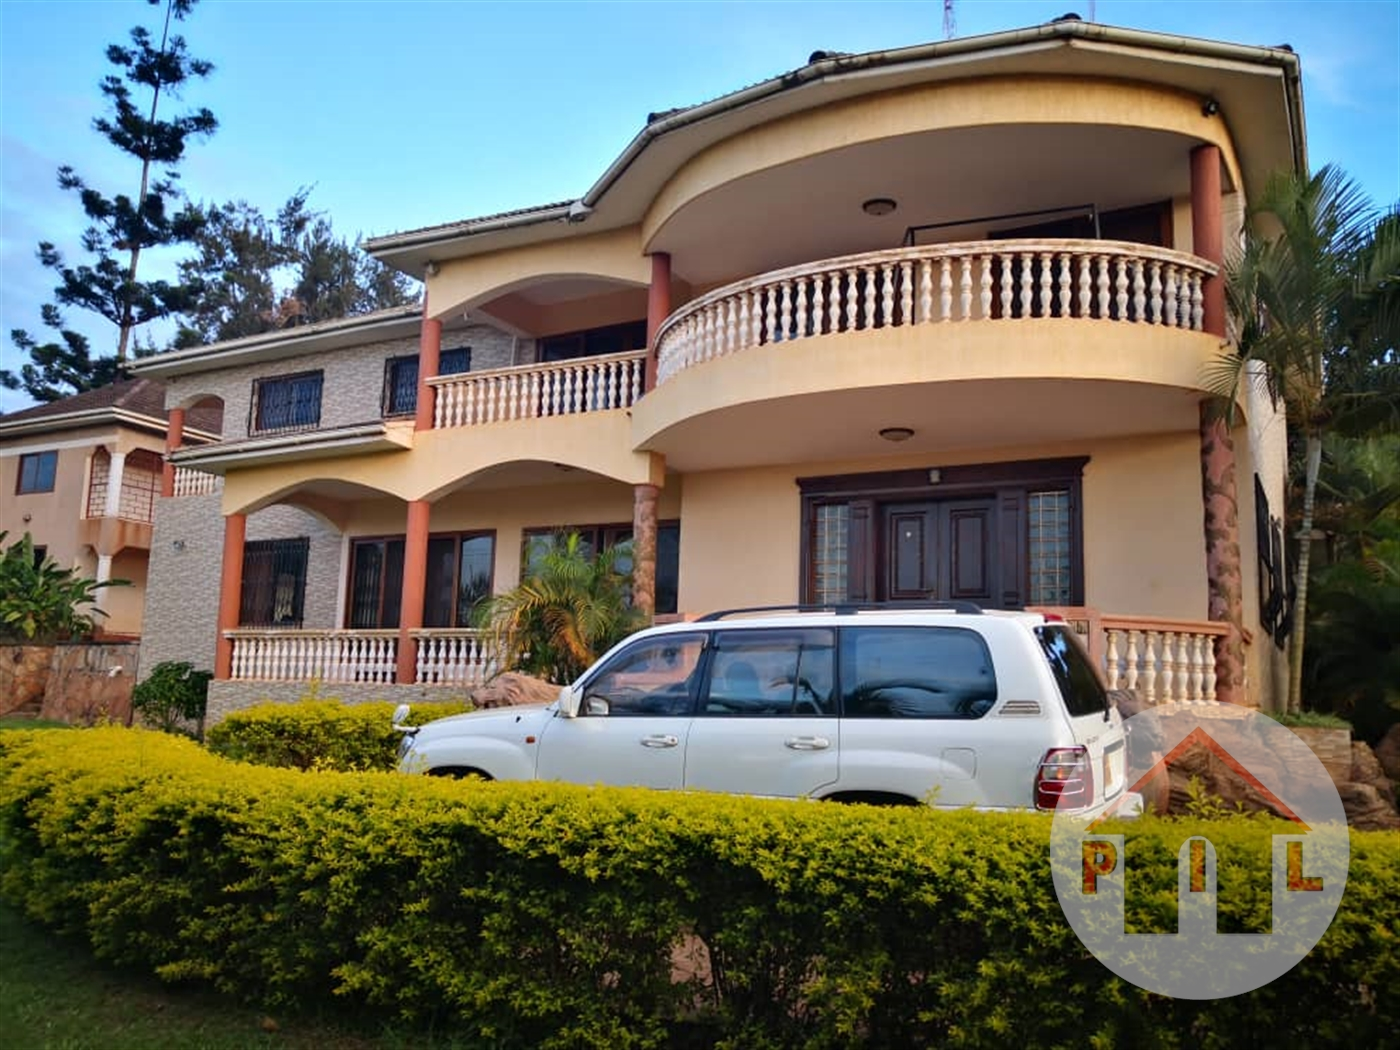 Mansion for sale in Naguru Kampala